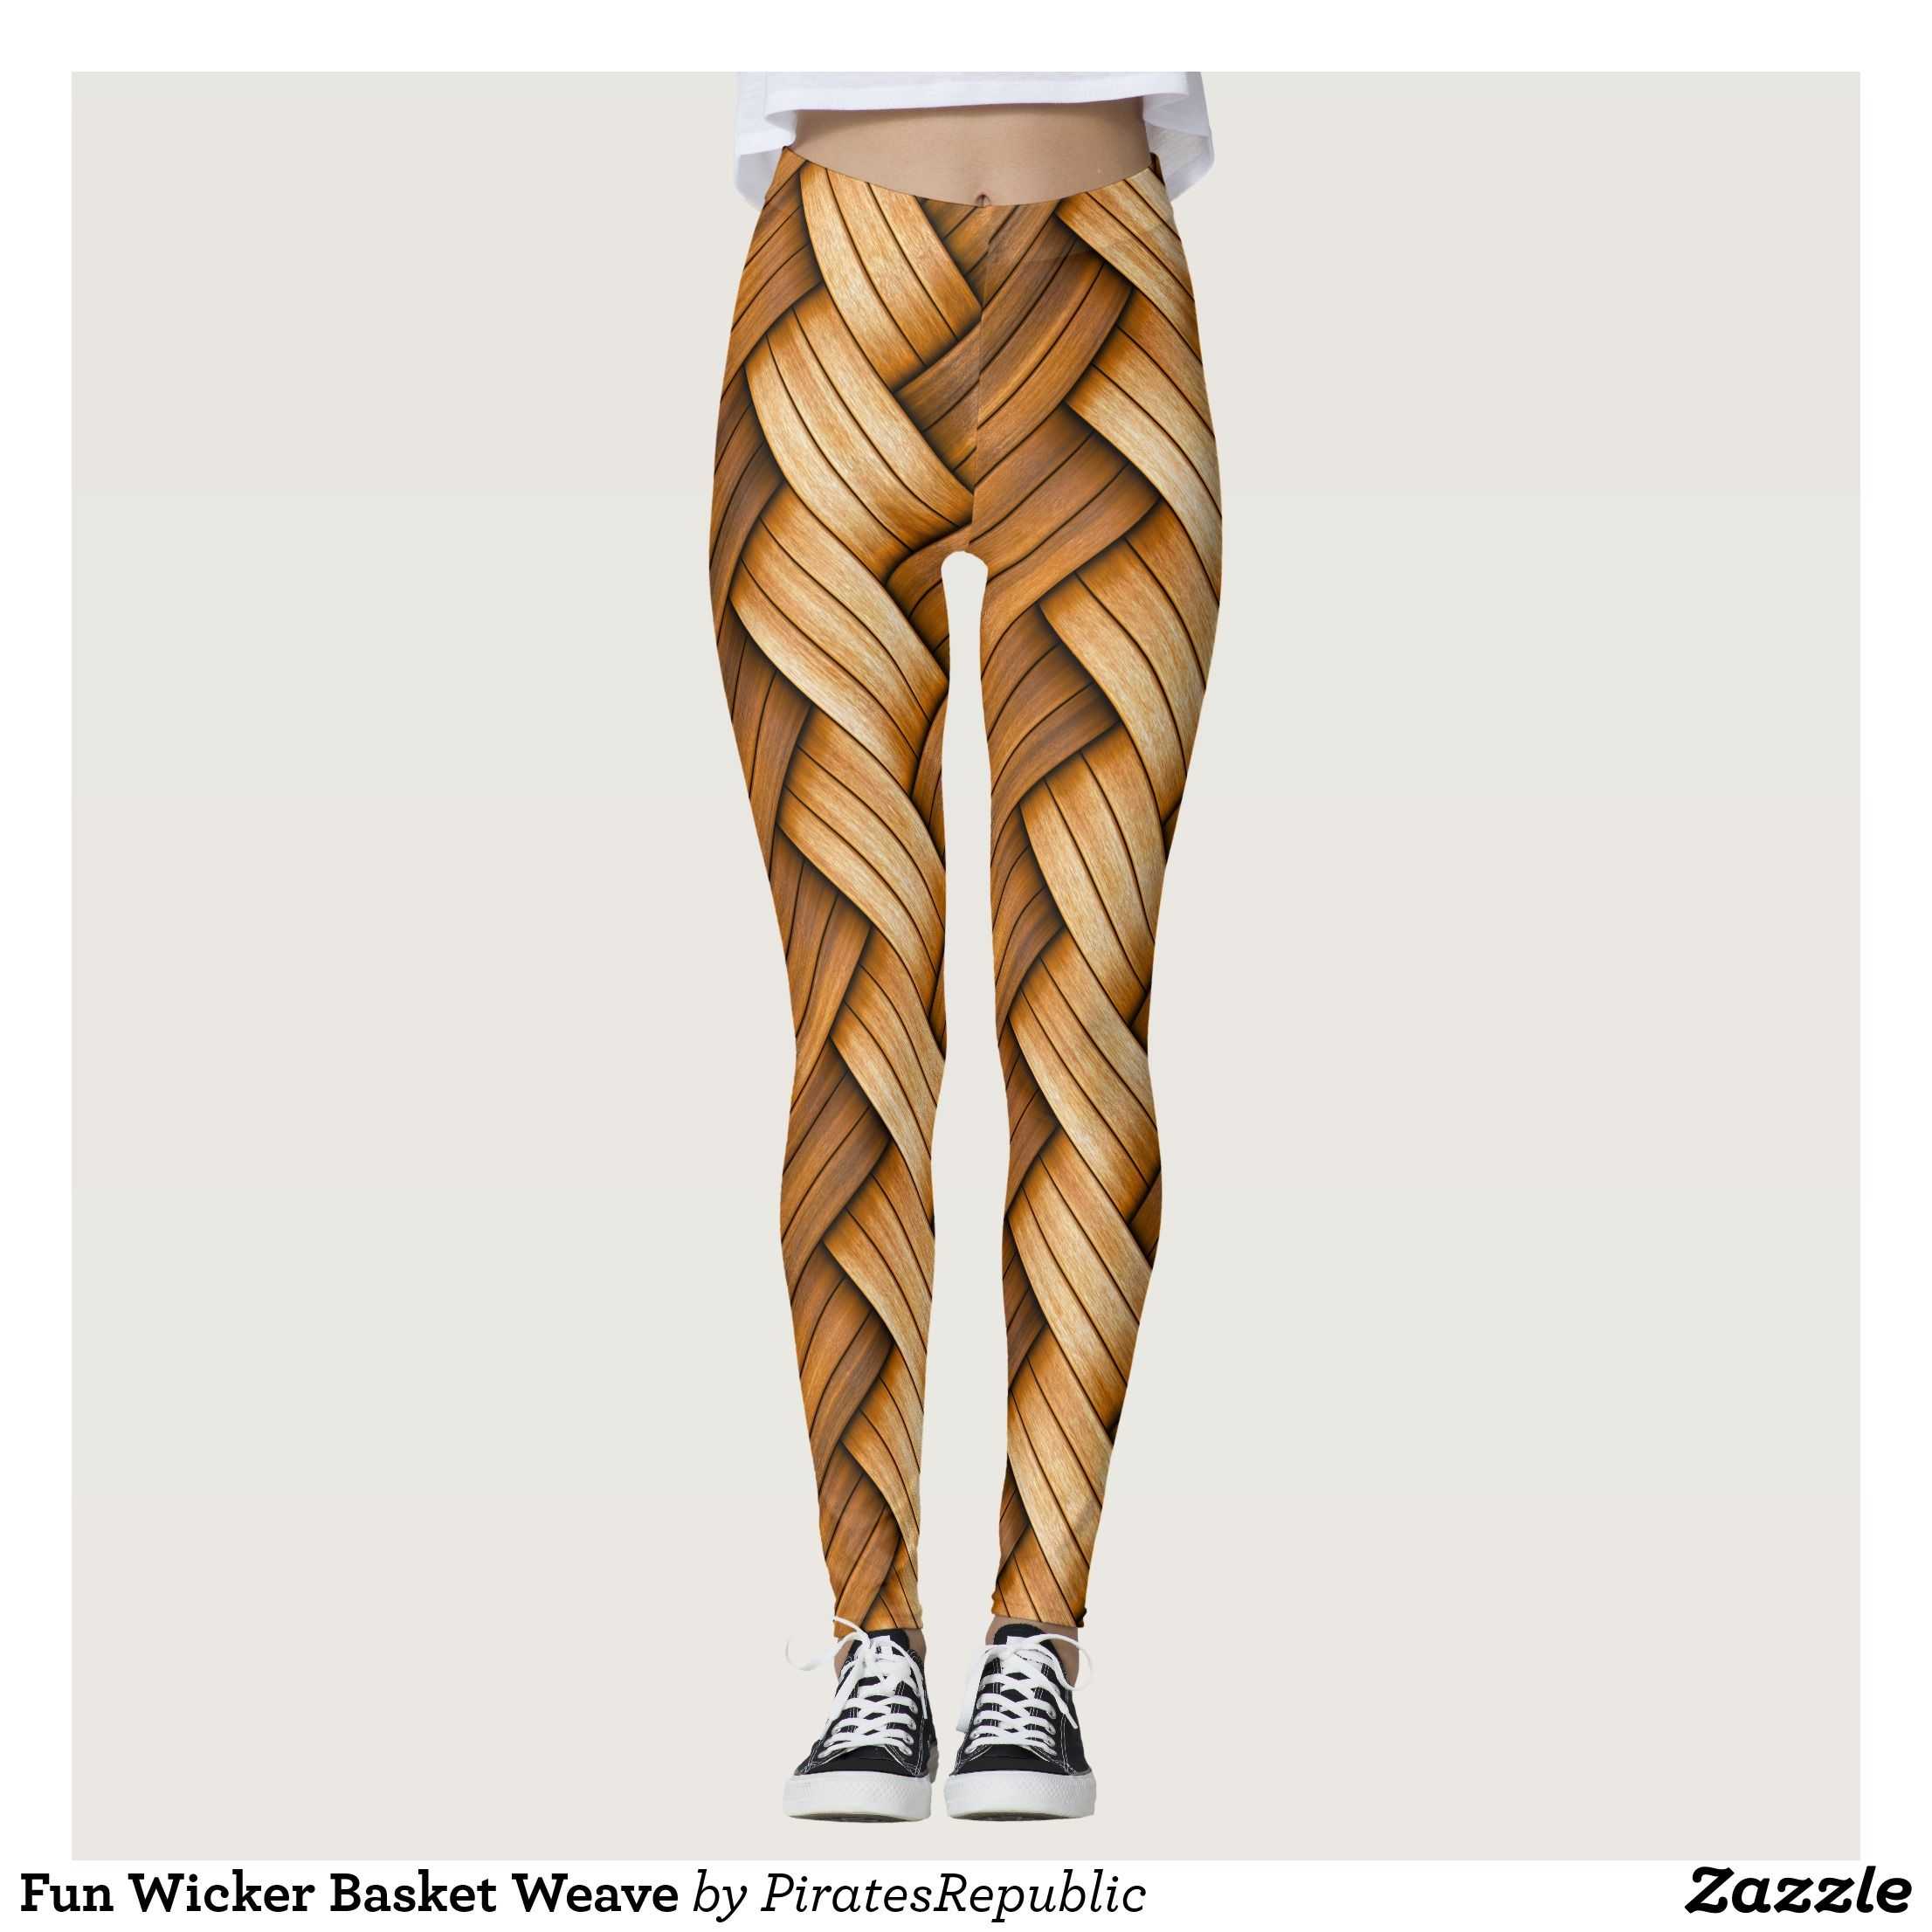 d086e632b8 Fun Wicker Basket Weave Leggings : Beautiful #Yoga Pants - #Exercise  Leggings and #Running Tights - Health and Training Inspiration - Clothing  for ...